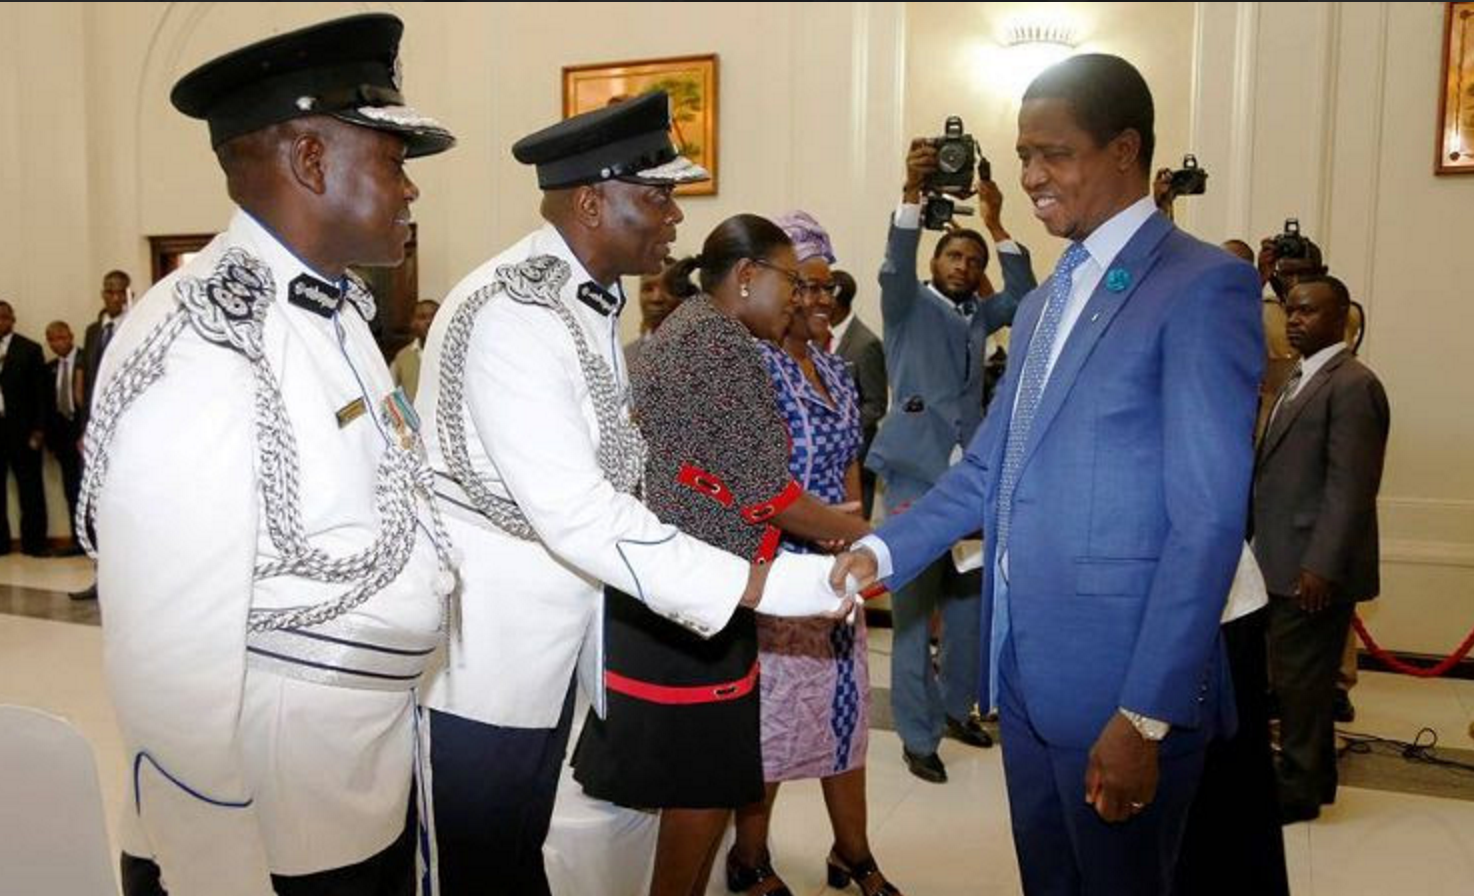 Senior police officers stealing from juniors…..